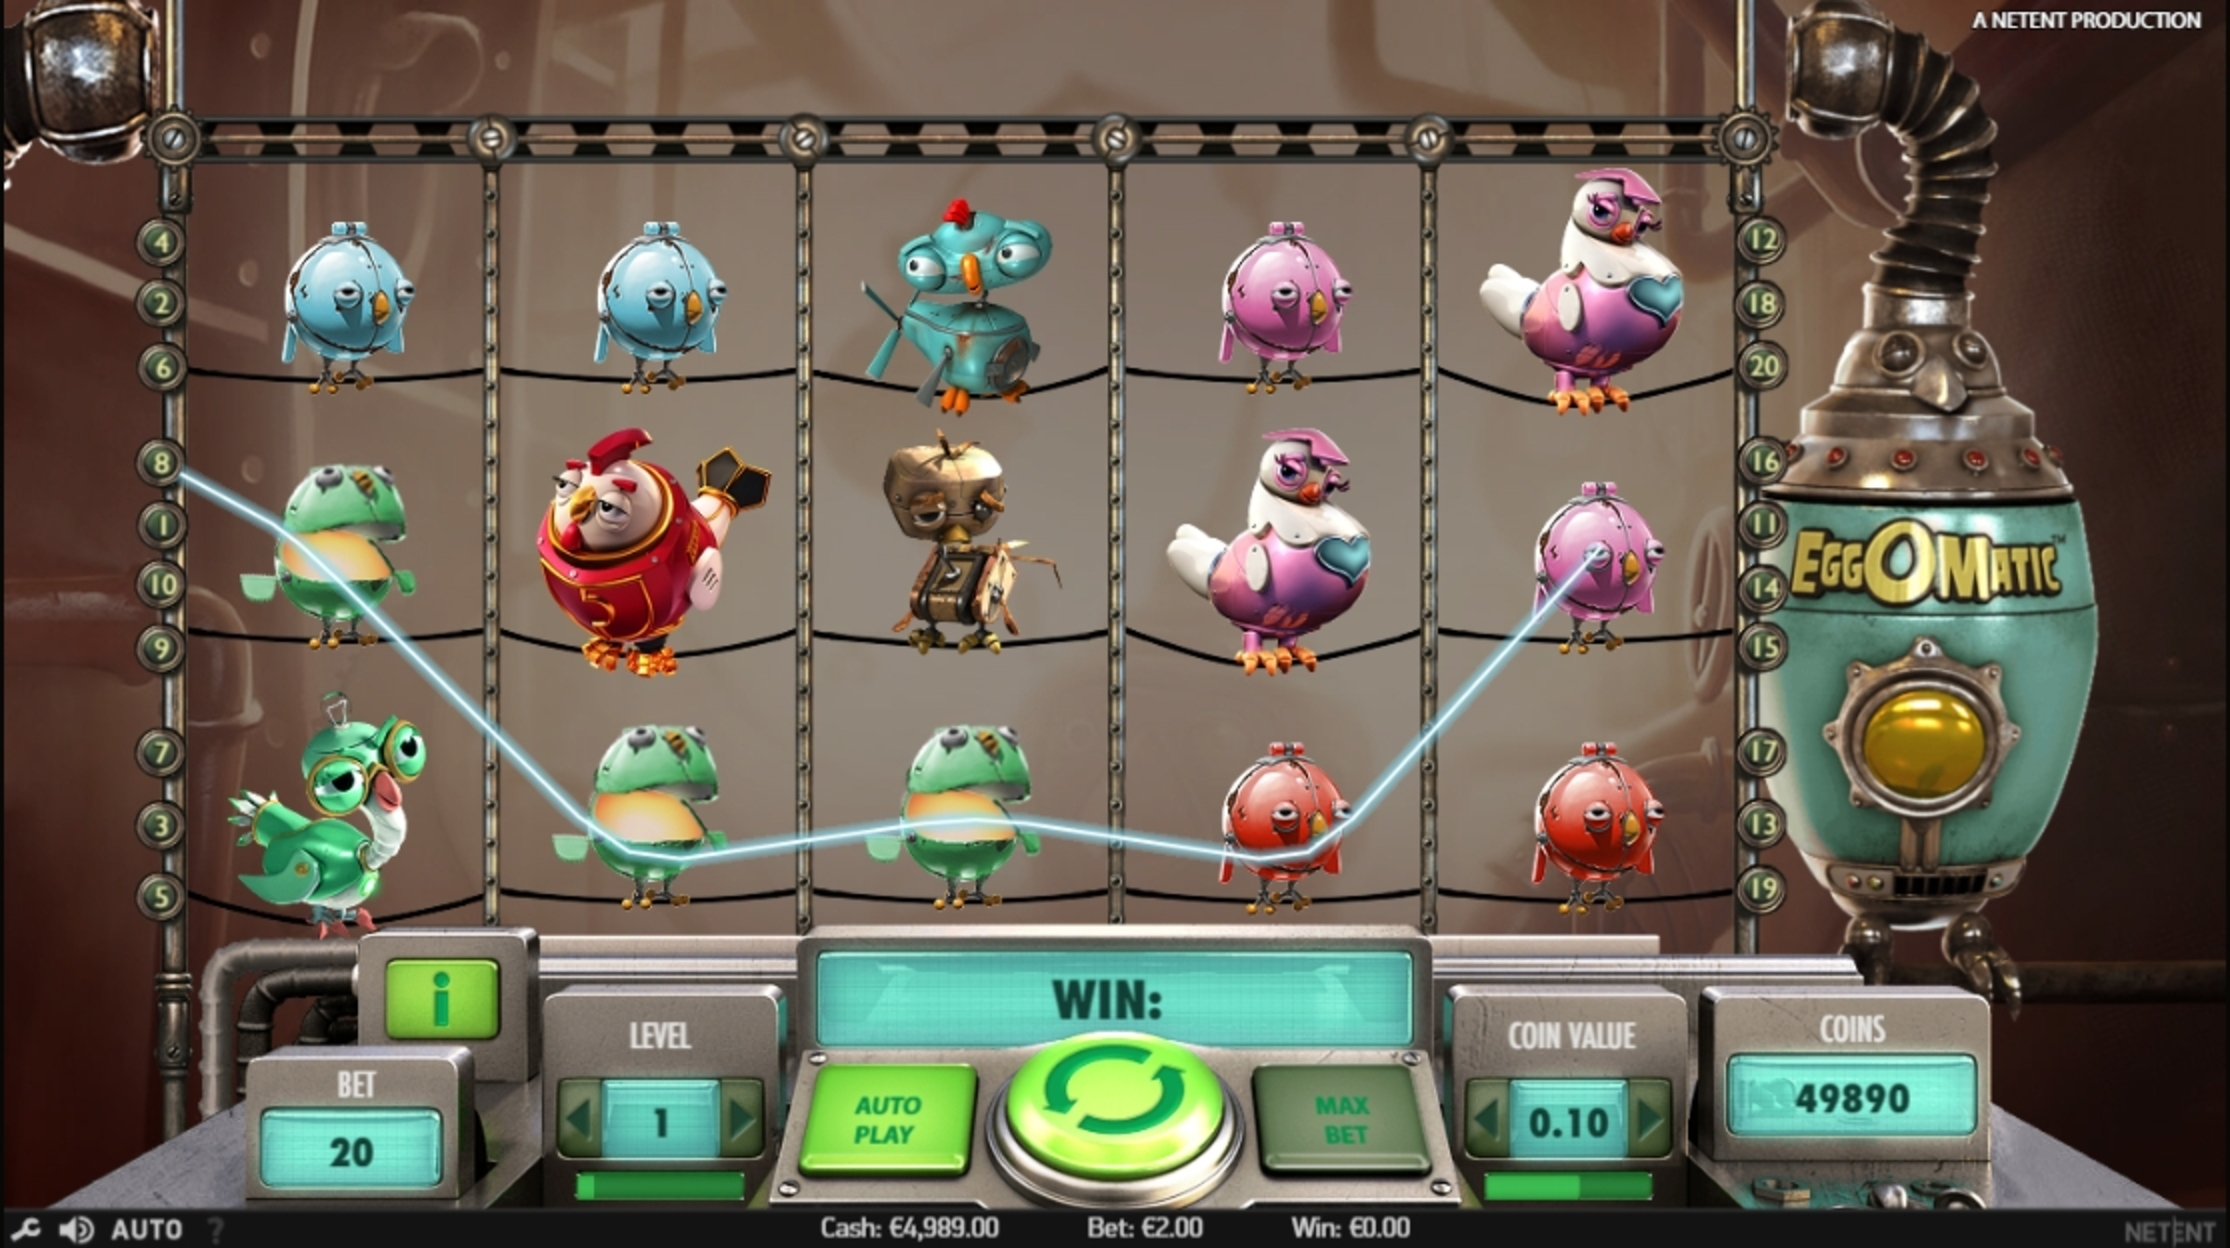 Win Money in Eggomatic Free Slot Game by NetEnt